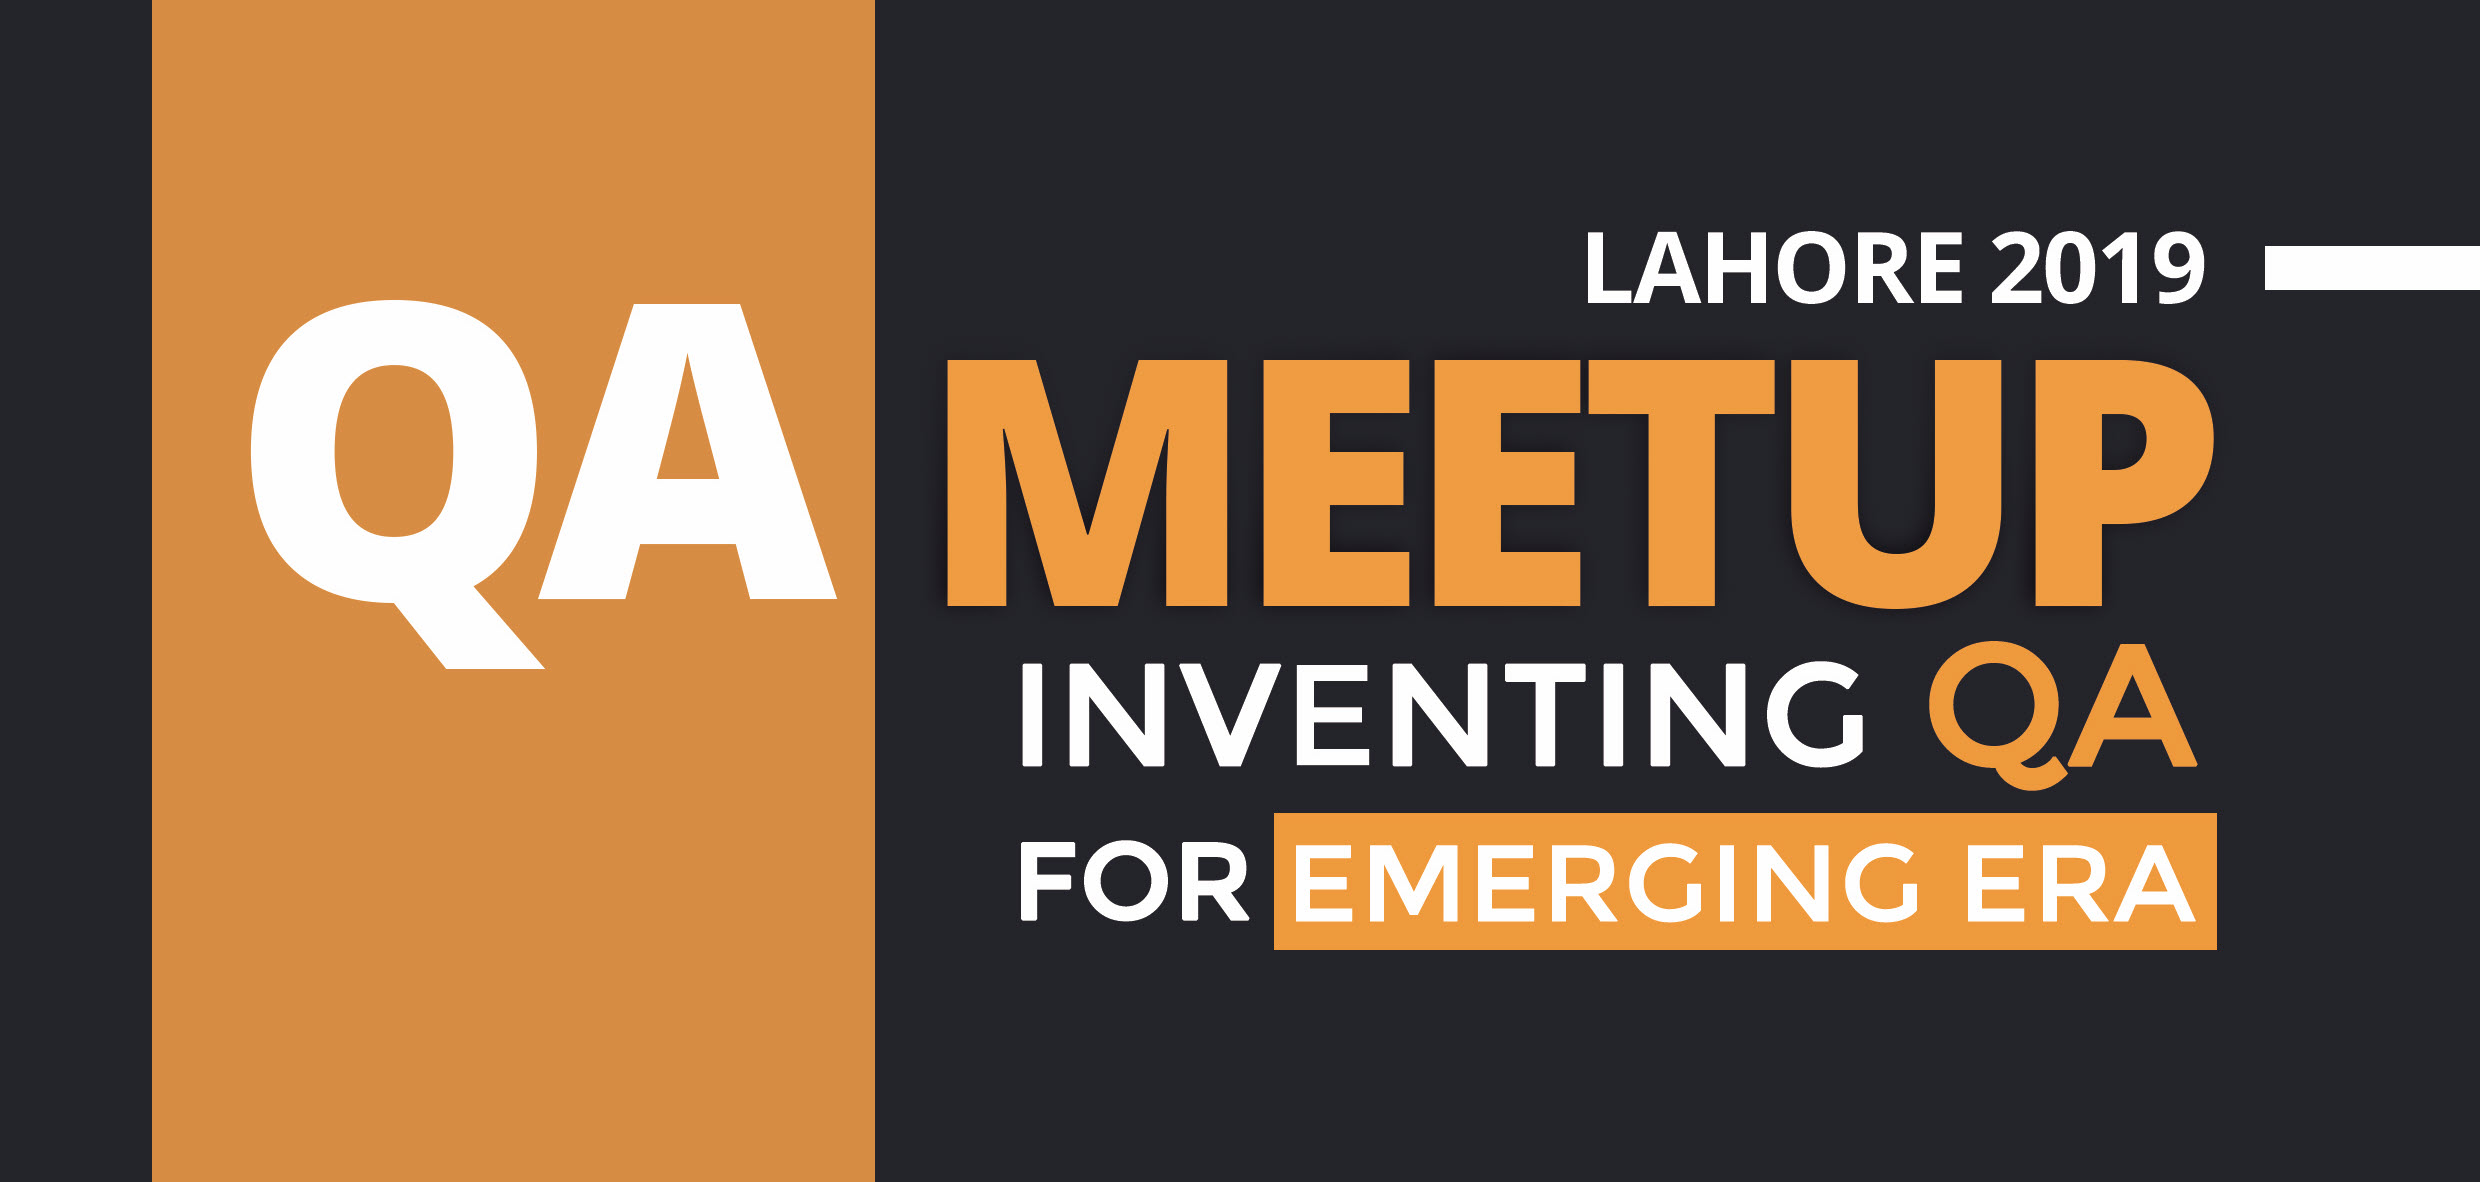 Systems-QA-Meetup-Lahore-FAST-NUCES-TechJuice